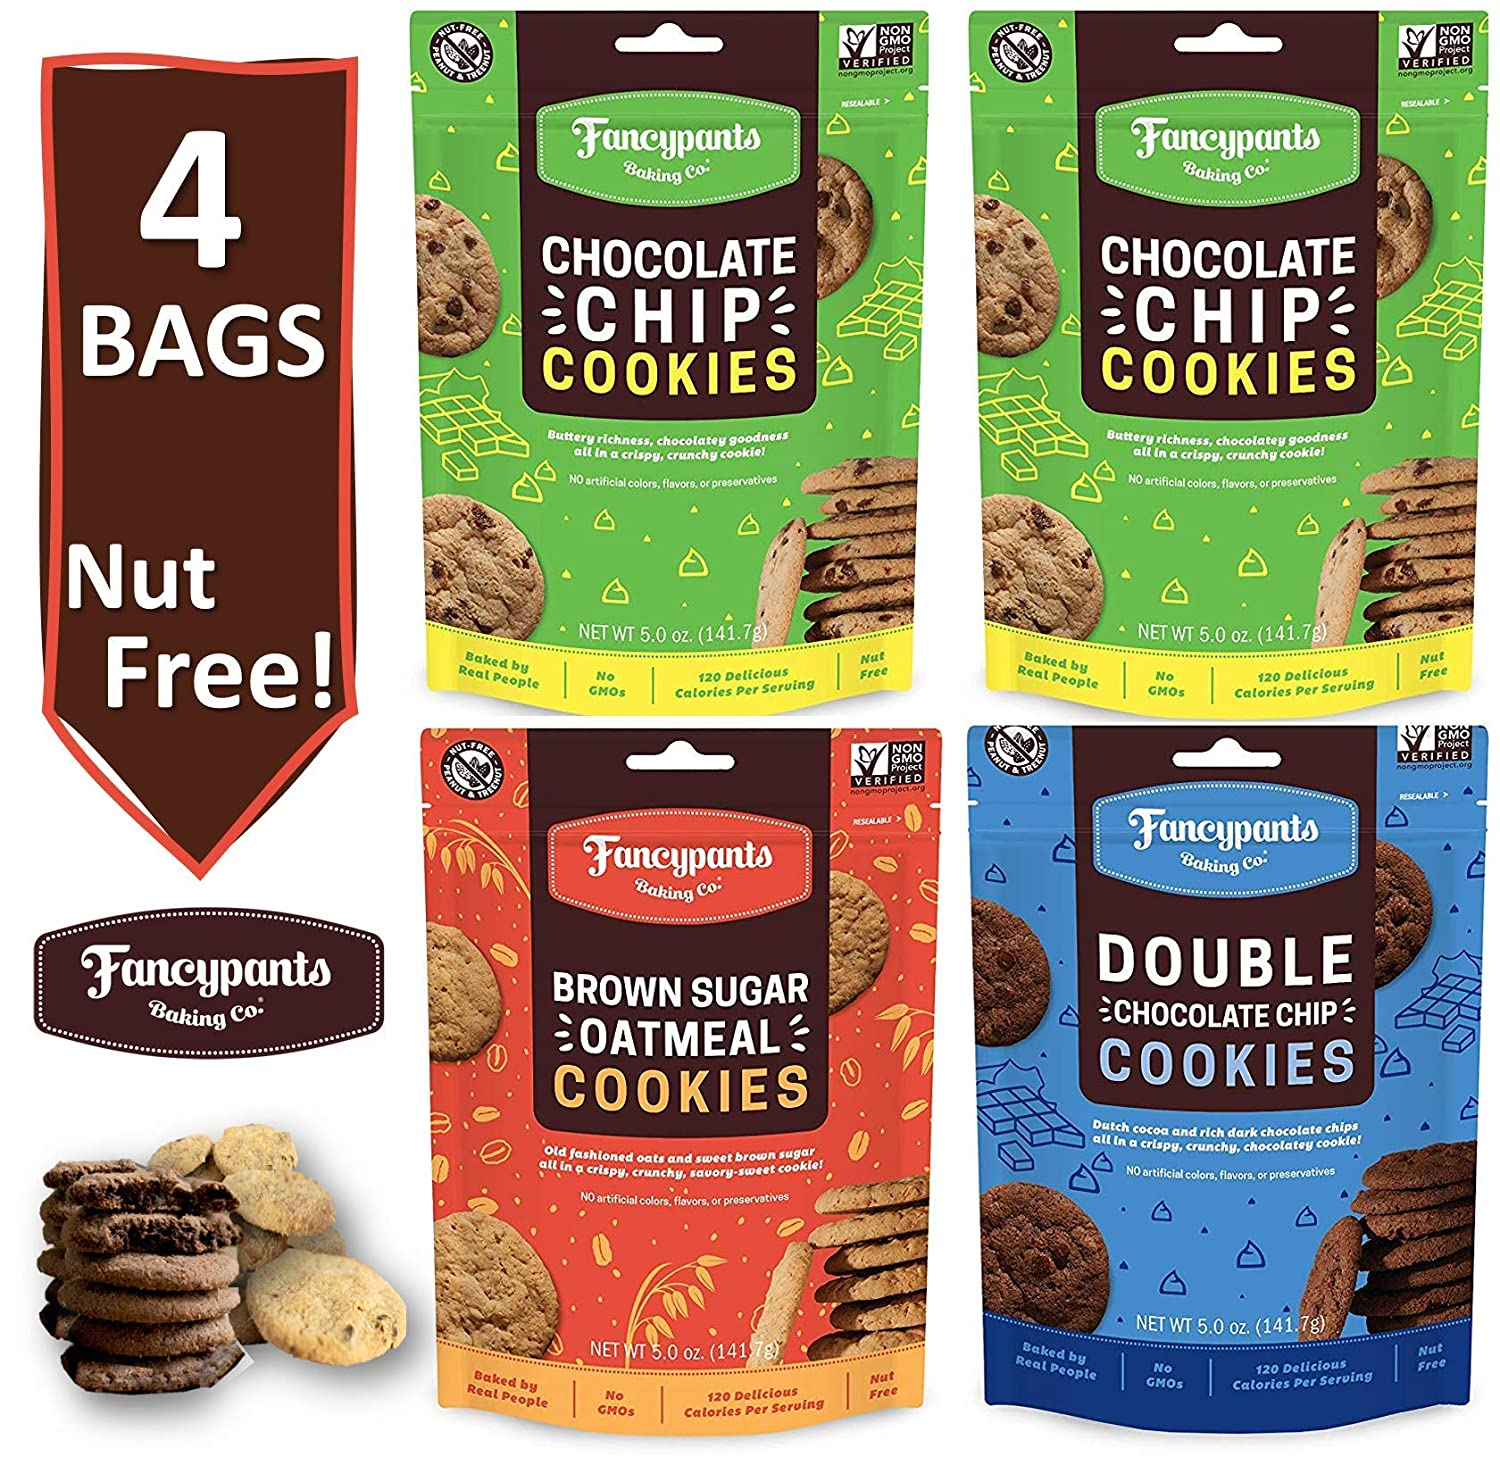 Amazon Coupon Code for Nut Free Cookies